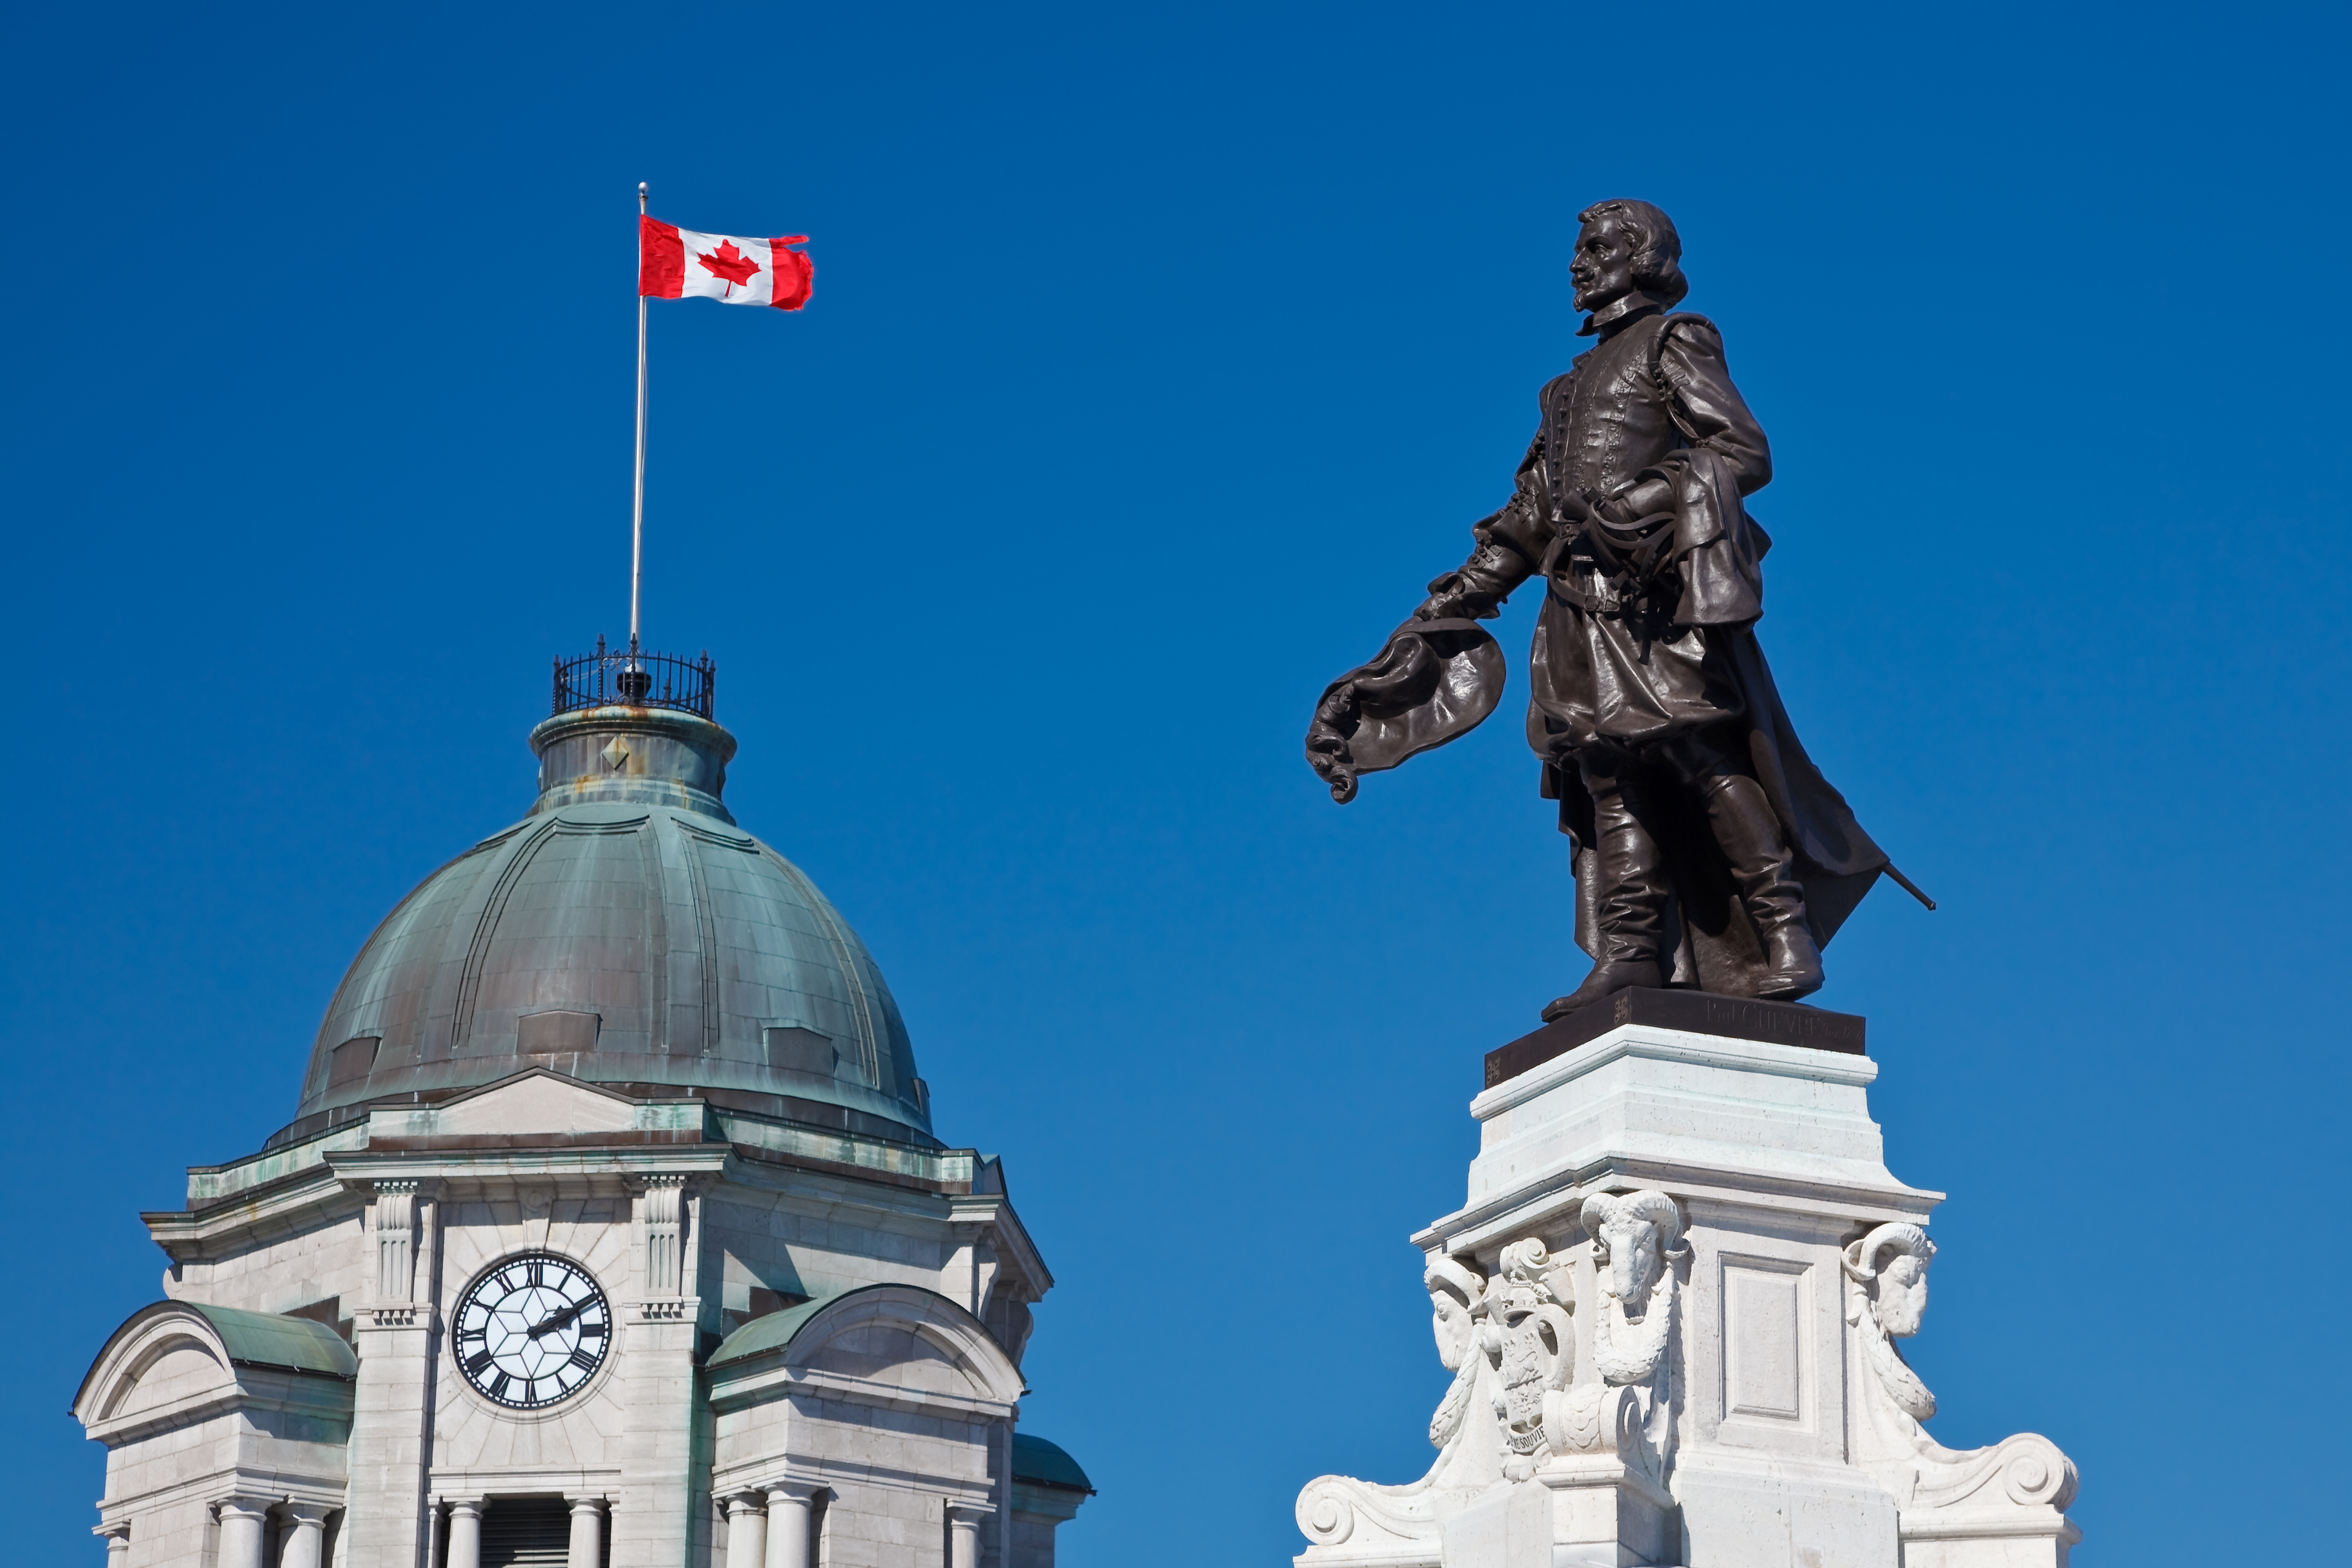 historical places canada a3 Parks canada manages 171 remarkable and inspiring national historic sites across canada travel in time and explore stories both near and far visit: wwwpar.